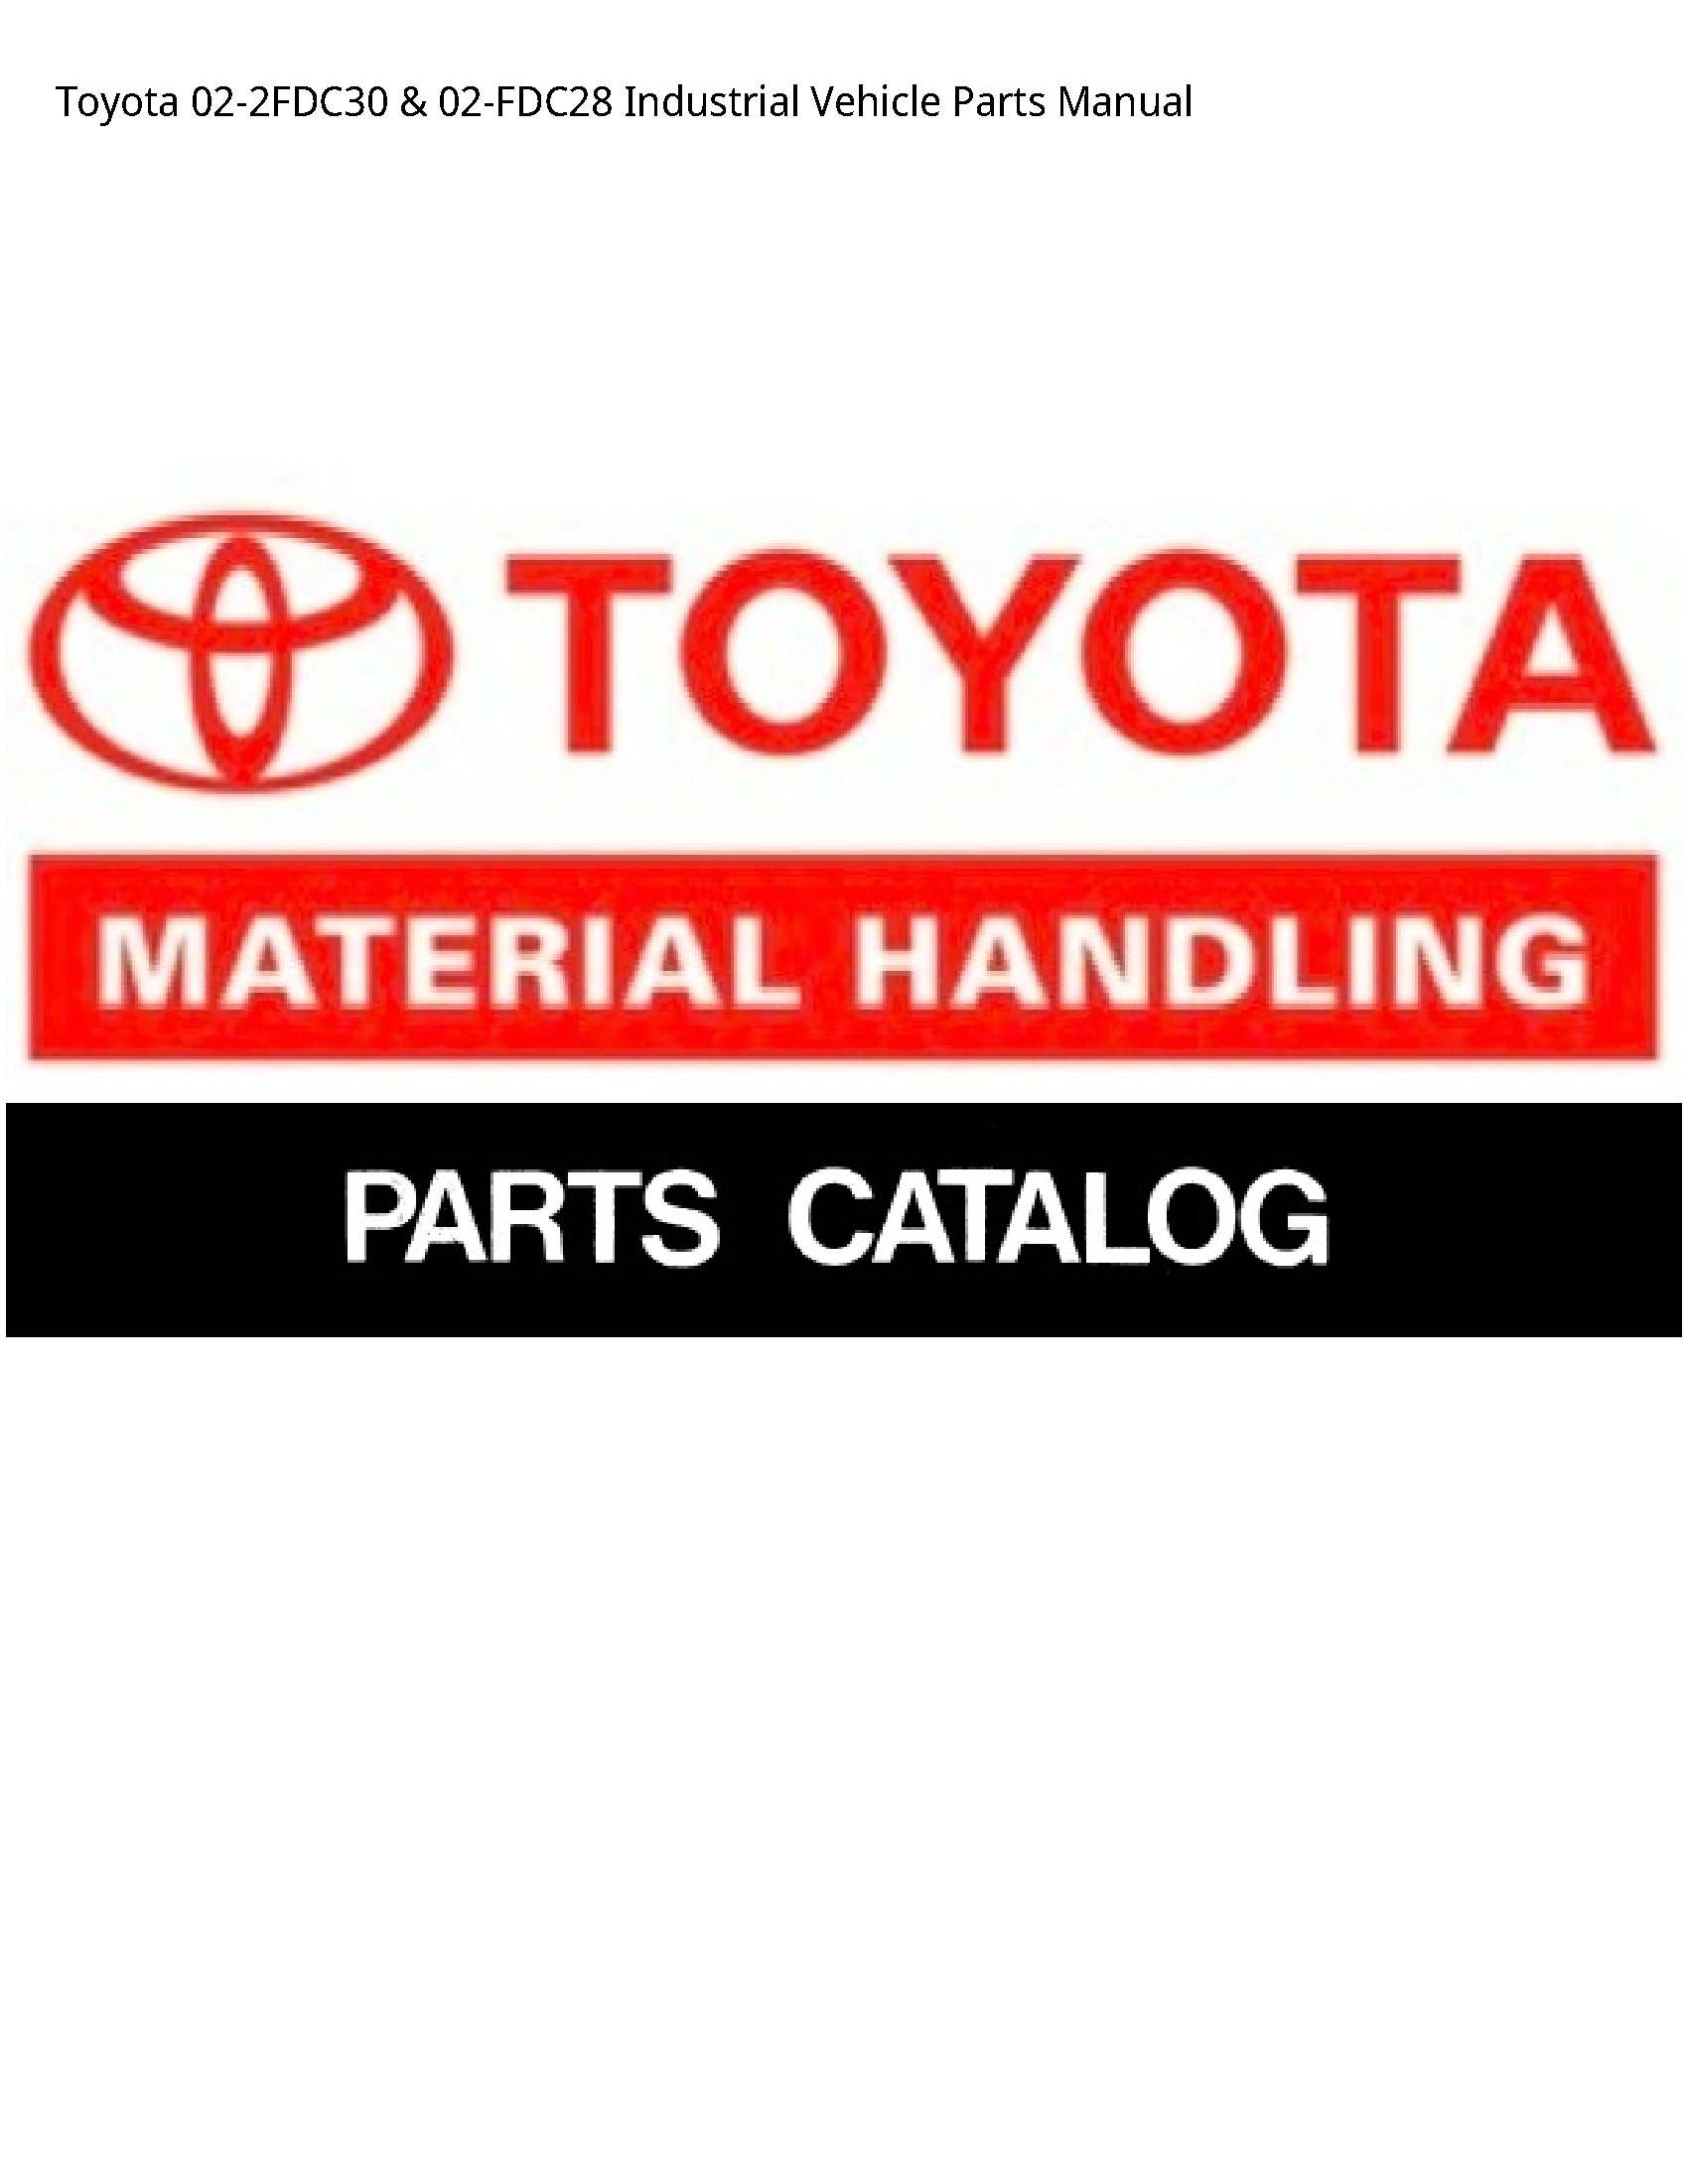 Toyota 02-2FDC30 Industrial Vehicle Parts manual